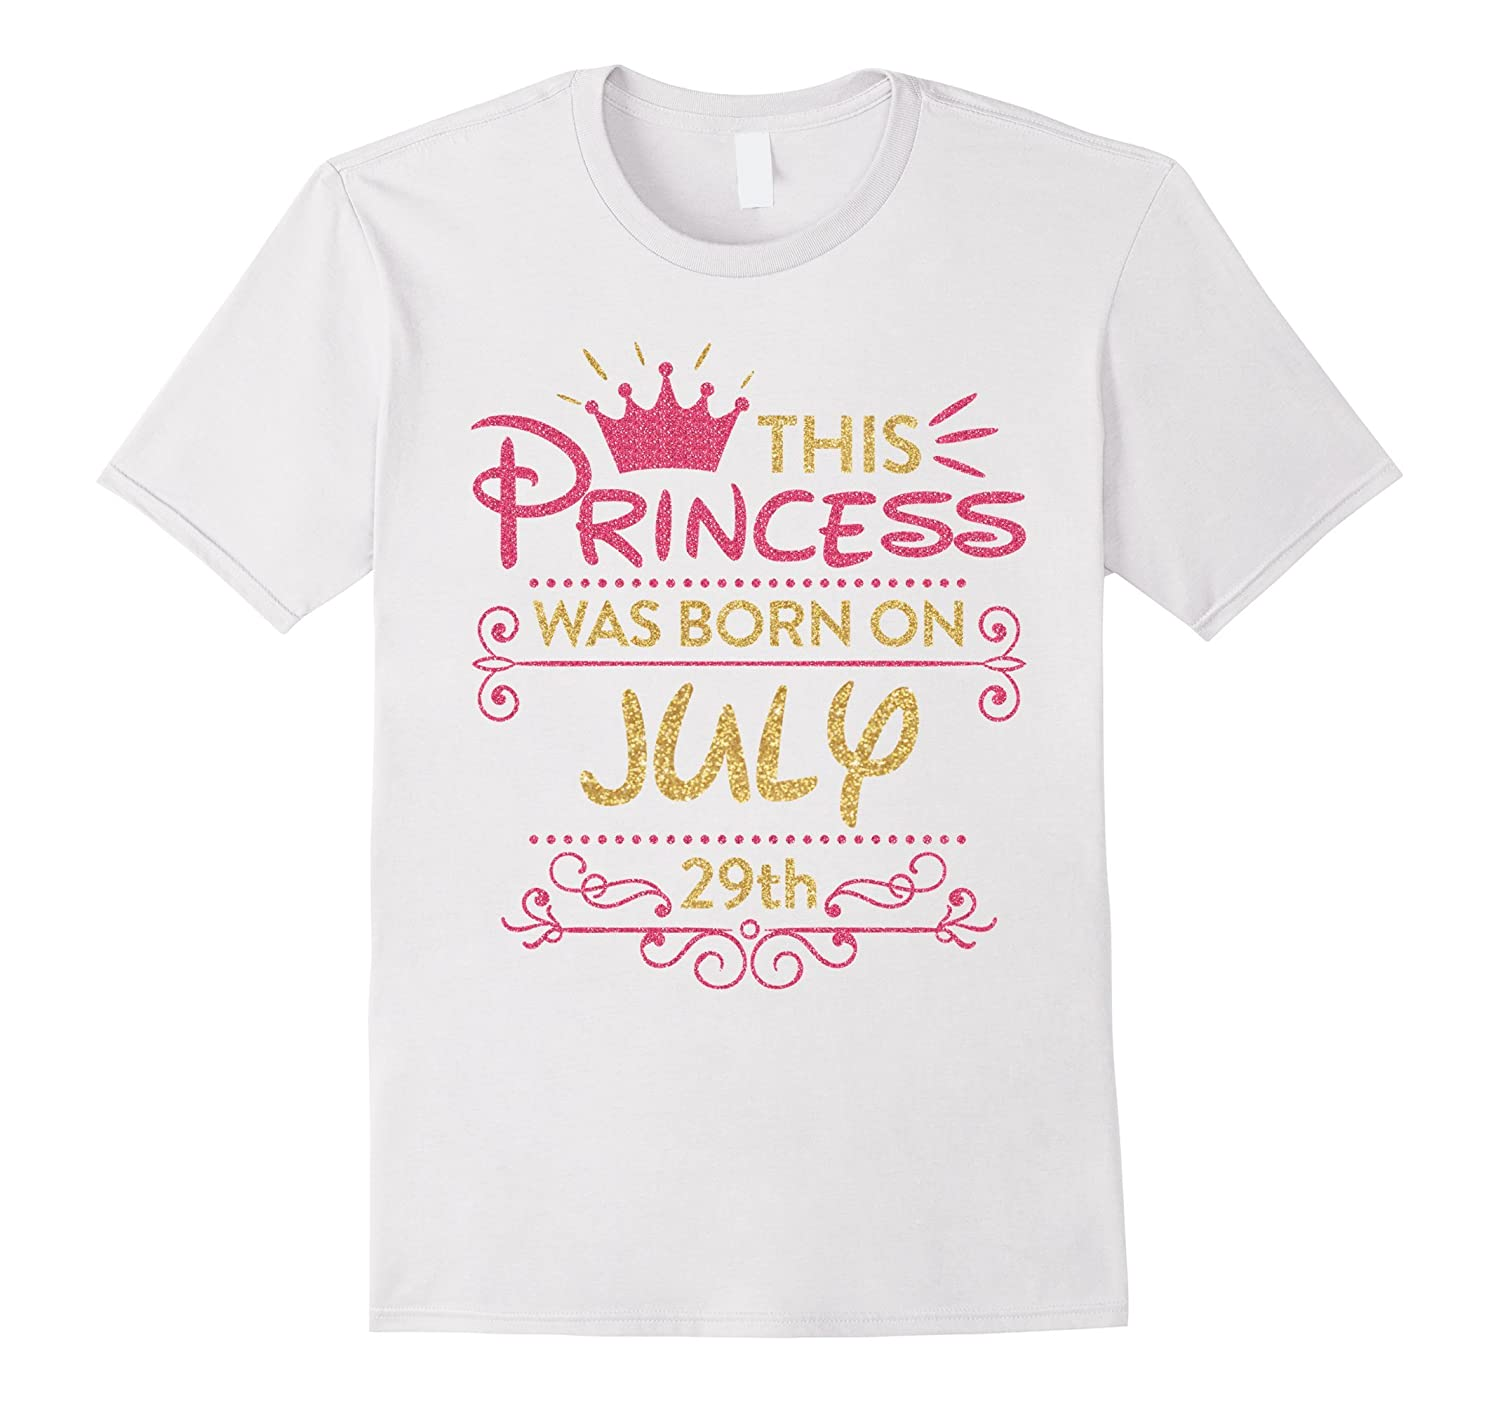 986c663c This Princess Was Born On July 29th T-shirt July Pride-PL – Polozatee